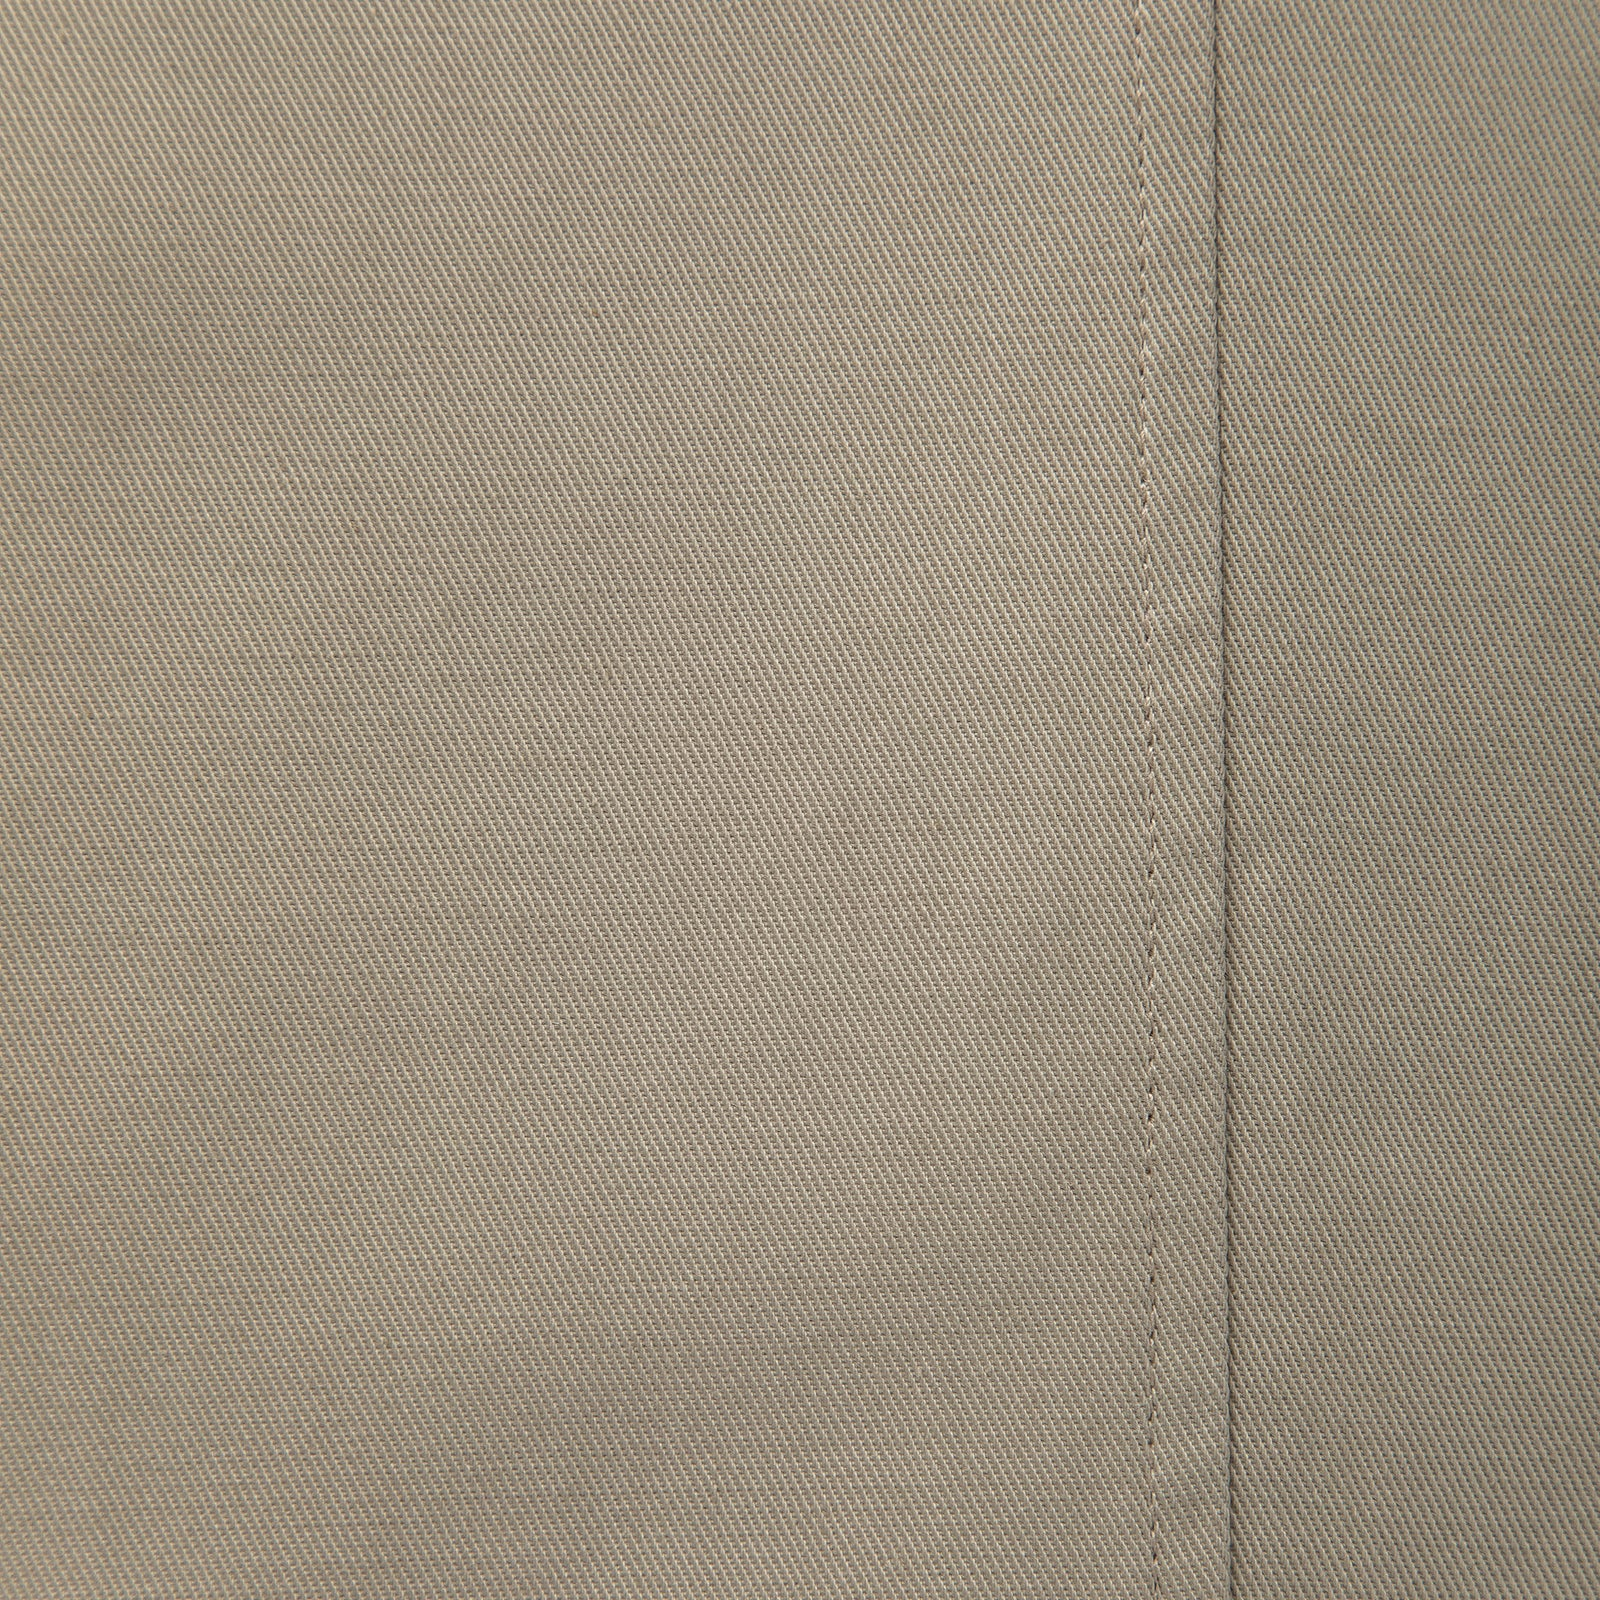 Beige eco elegant trousers. GOTS certified textile. 100% natural. Sustainable fashion.